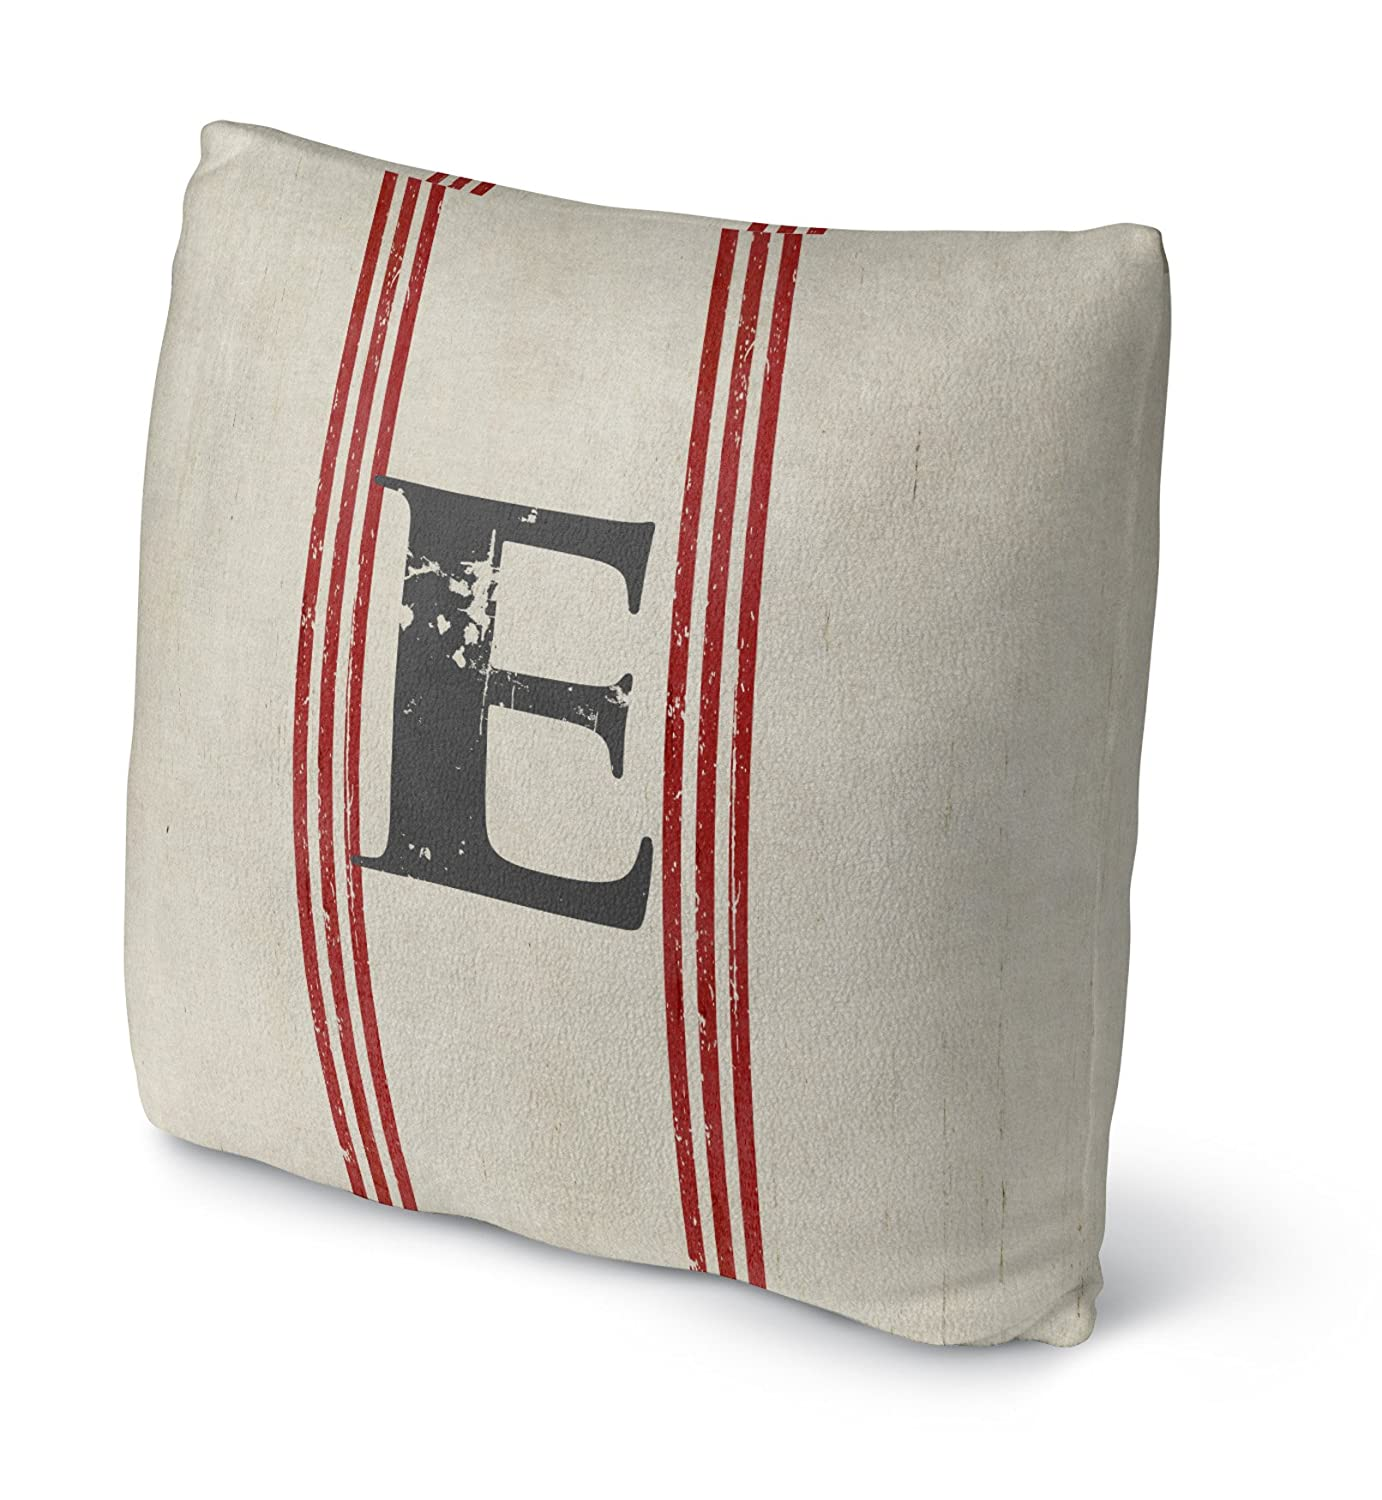 KAVKA Designs E Fleece Throw Pillow, - TELAVC1284FBS16 Size: 16X16X4 - Ivory//Red//Black